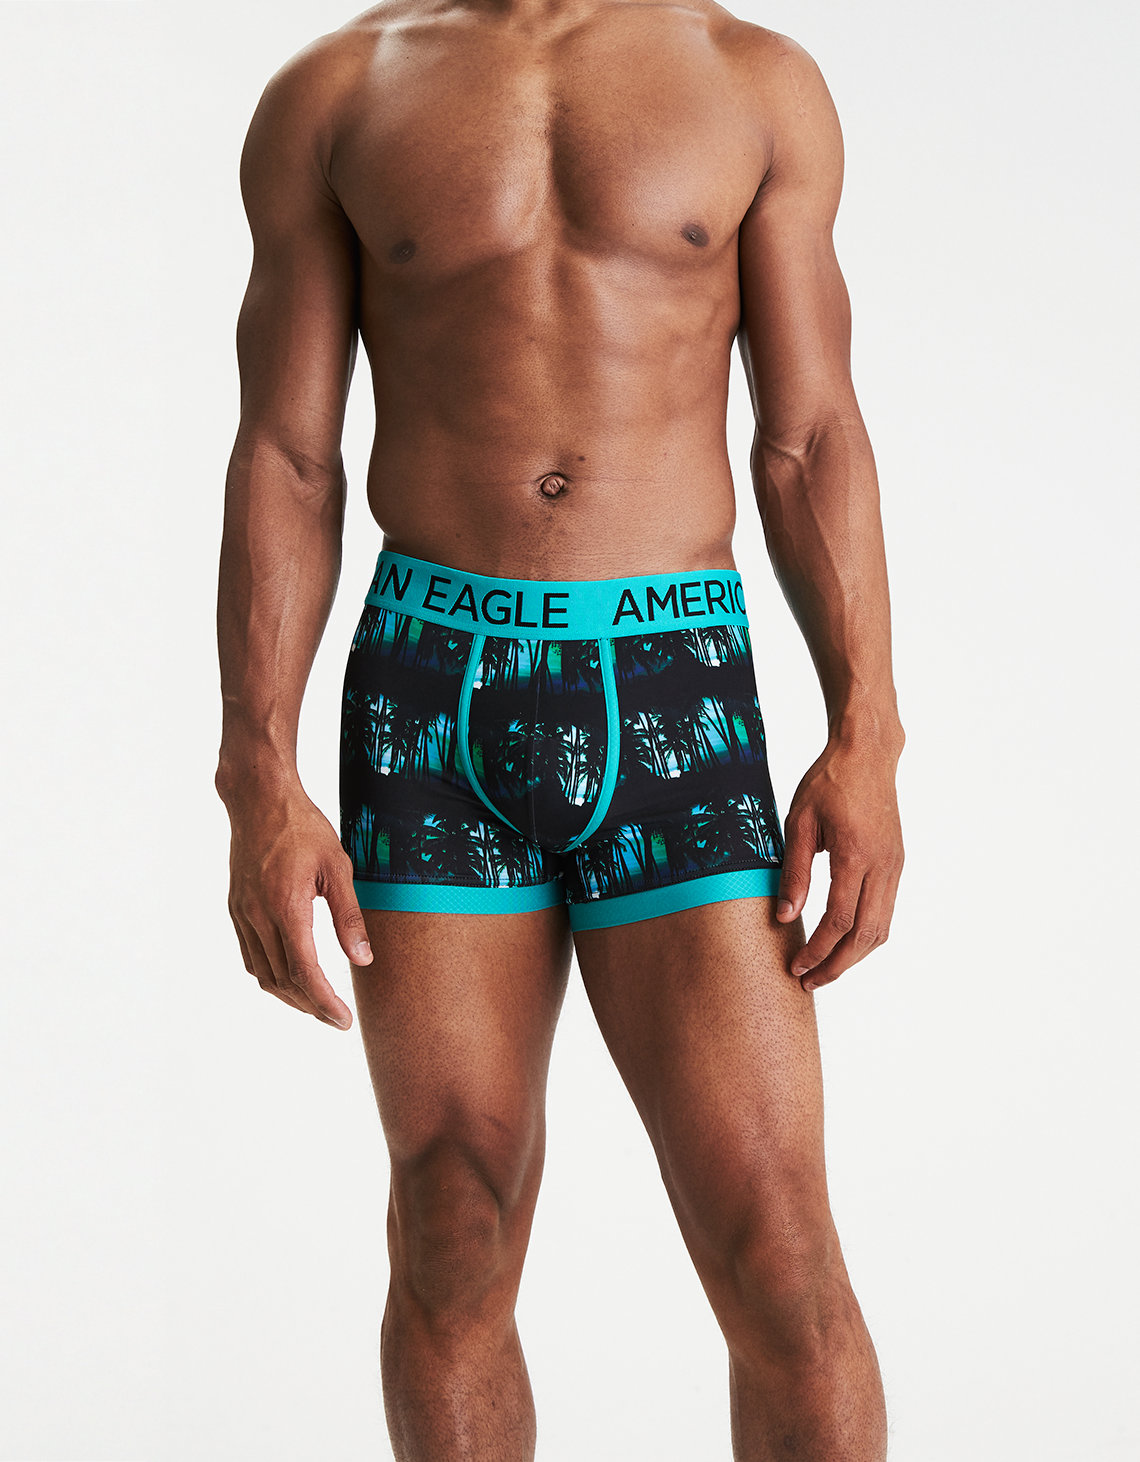 Today's top American Eagle coupon: 20% Off Your Purchase When You Sign-up For Emails. Get 38 American Eagle promo codes and coupons for December on RetailMeNot.